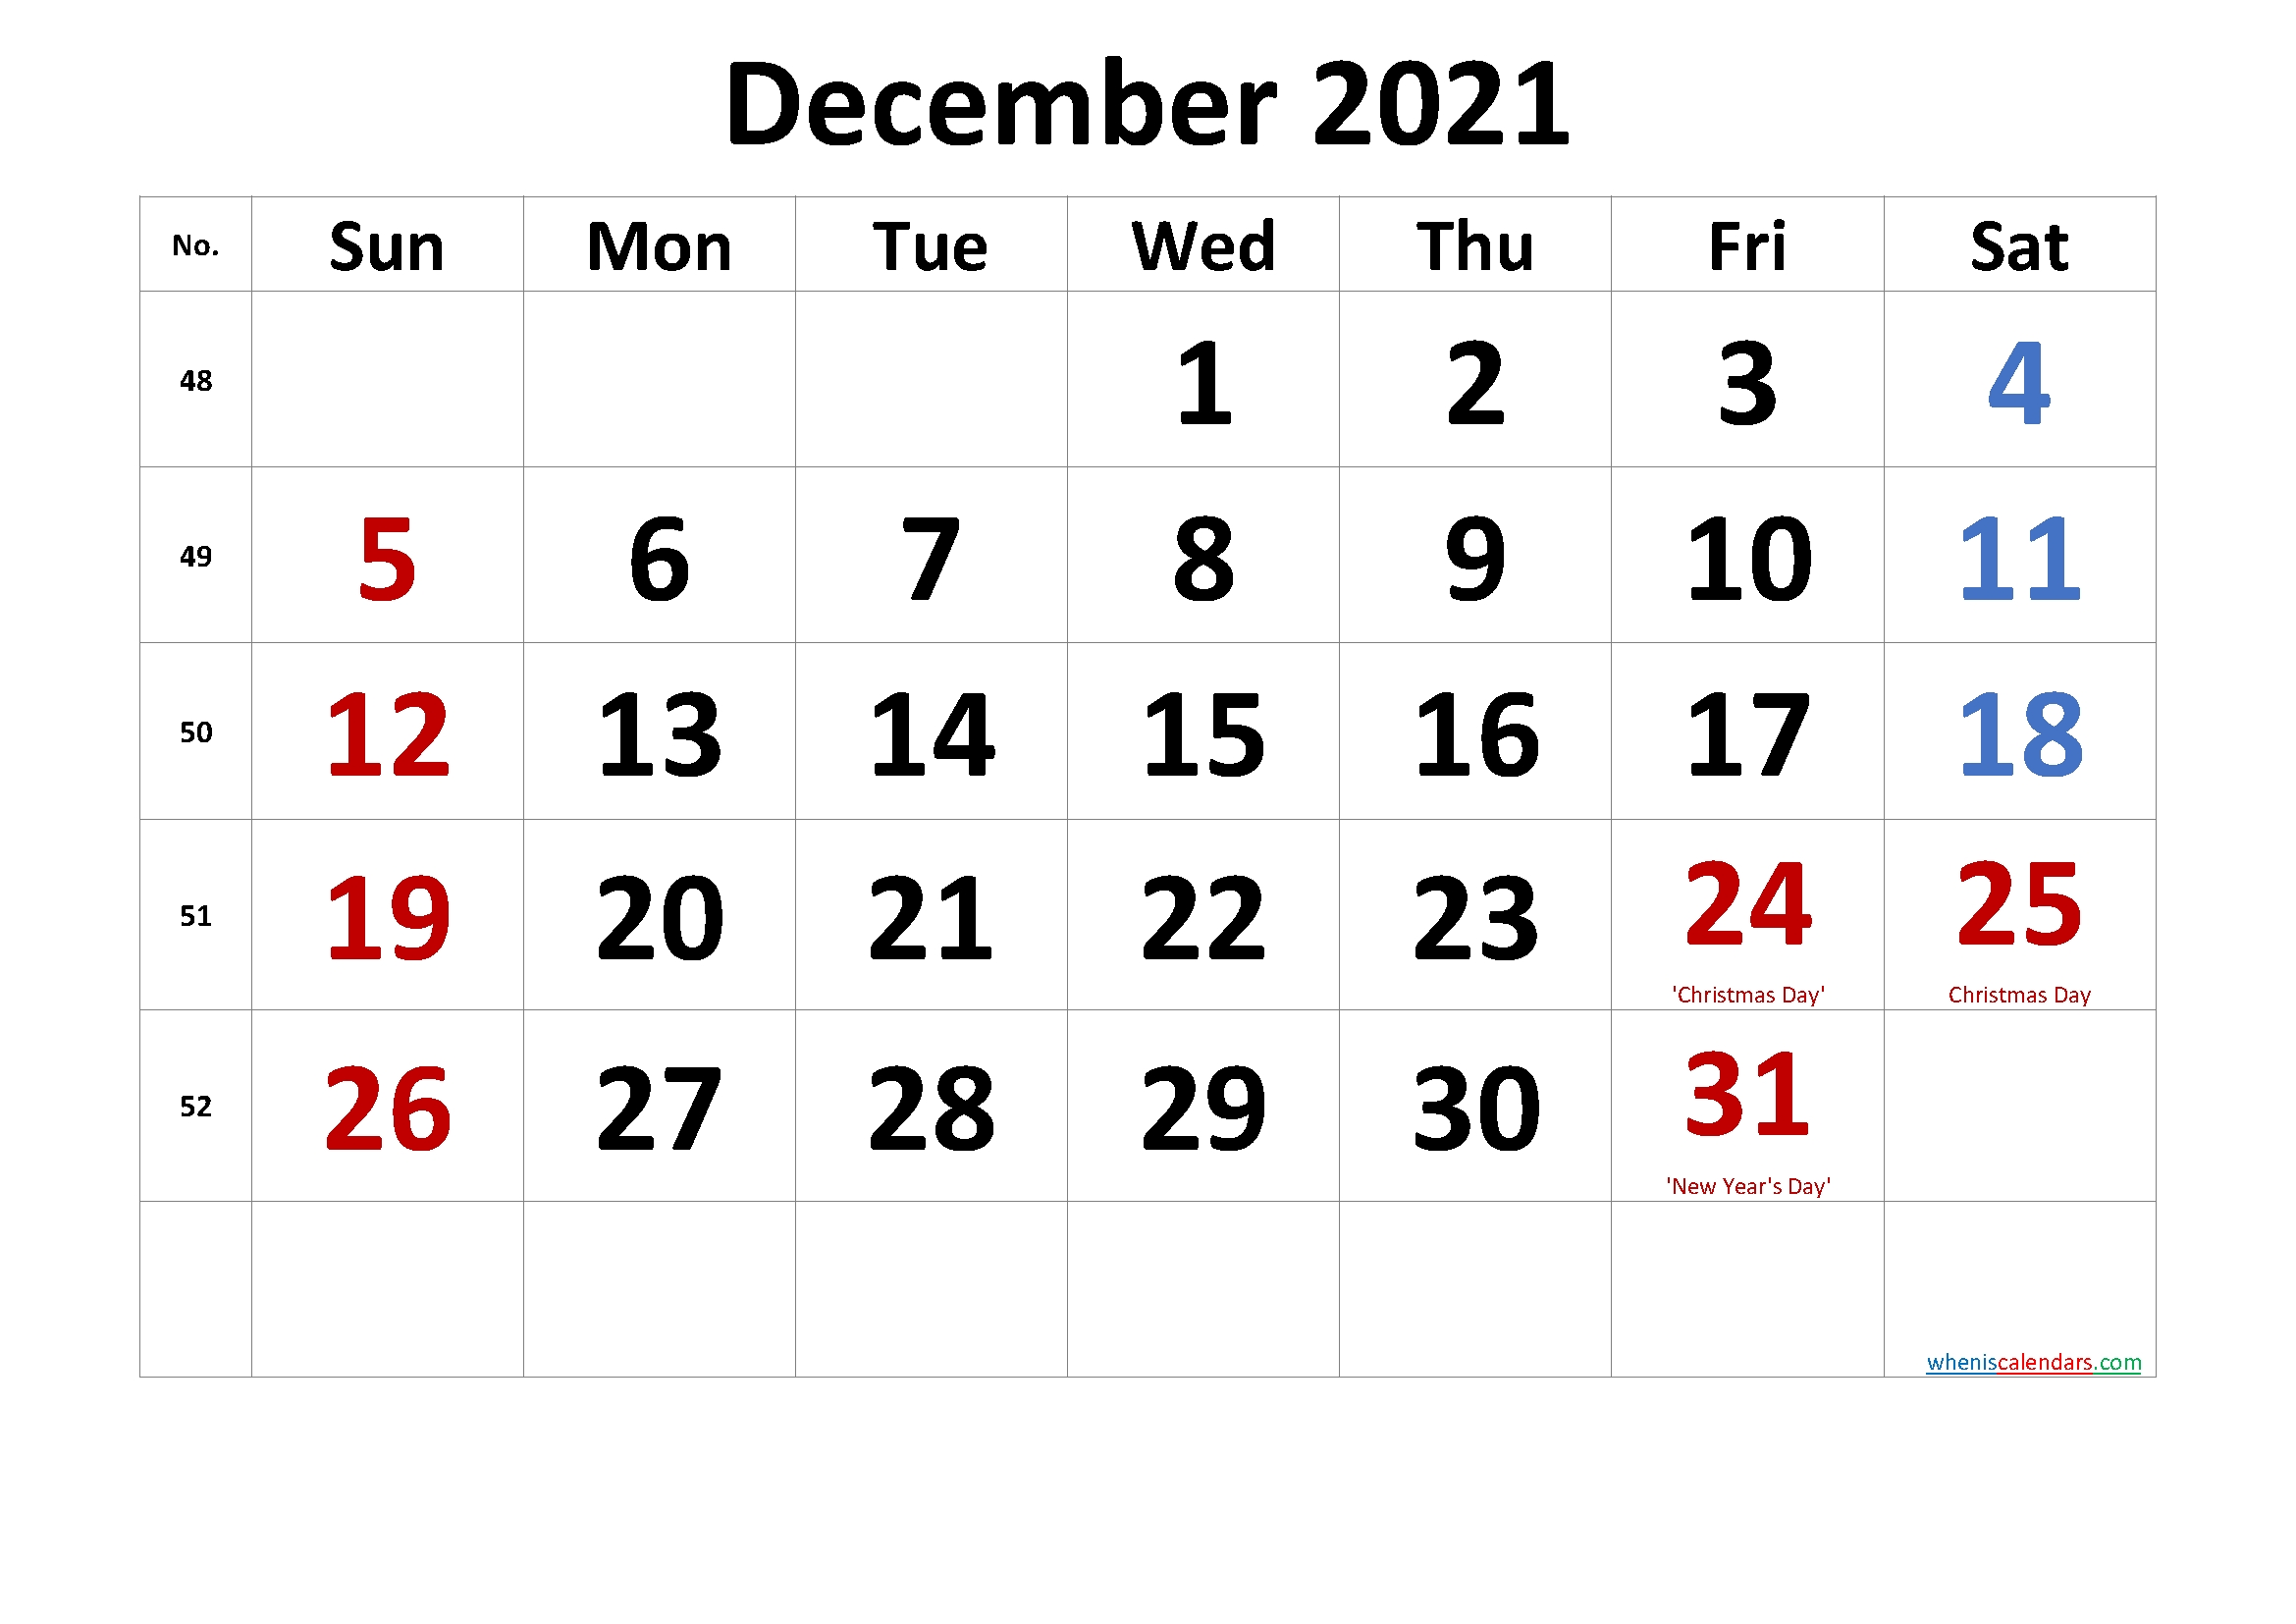 Take 2021 December Caemdar Tp Rint For No Download With Pictures